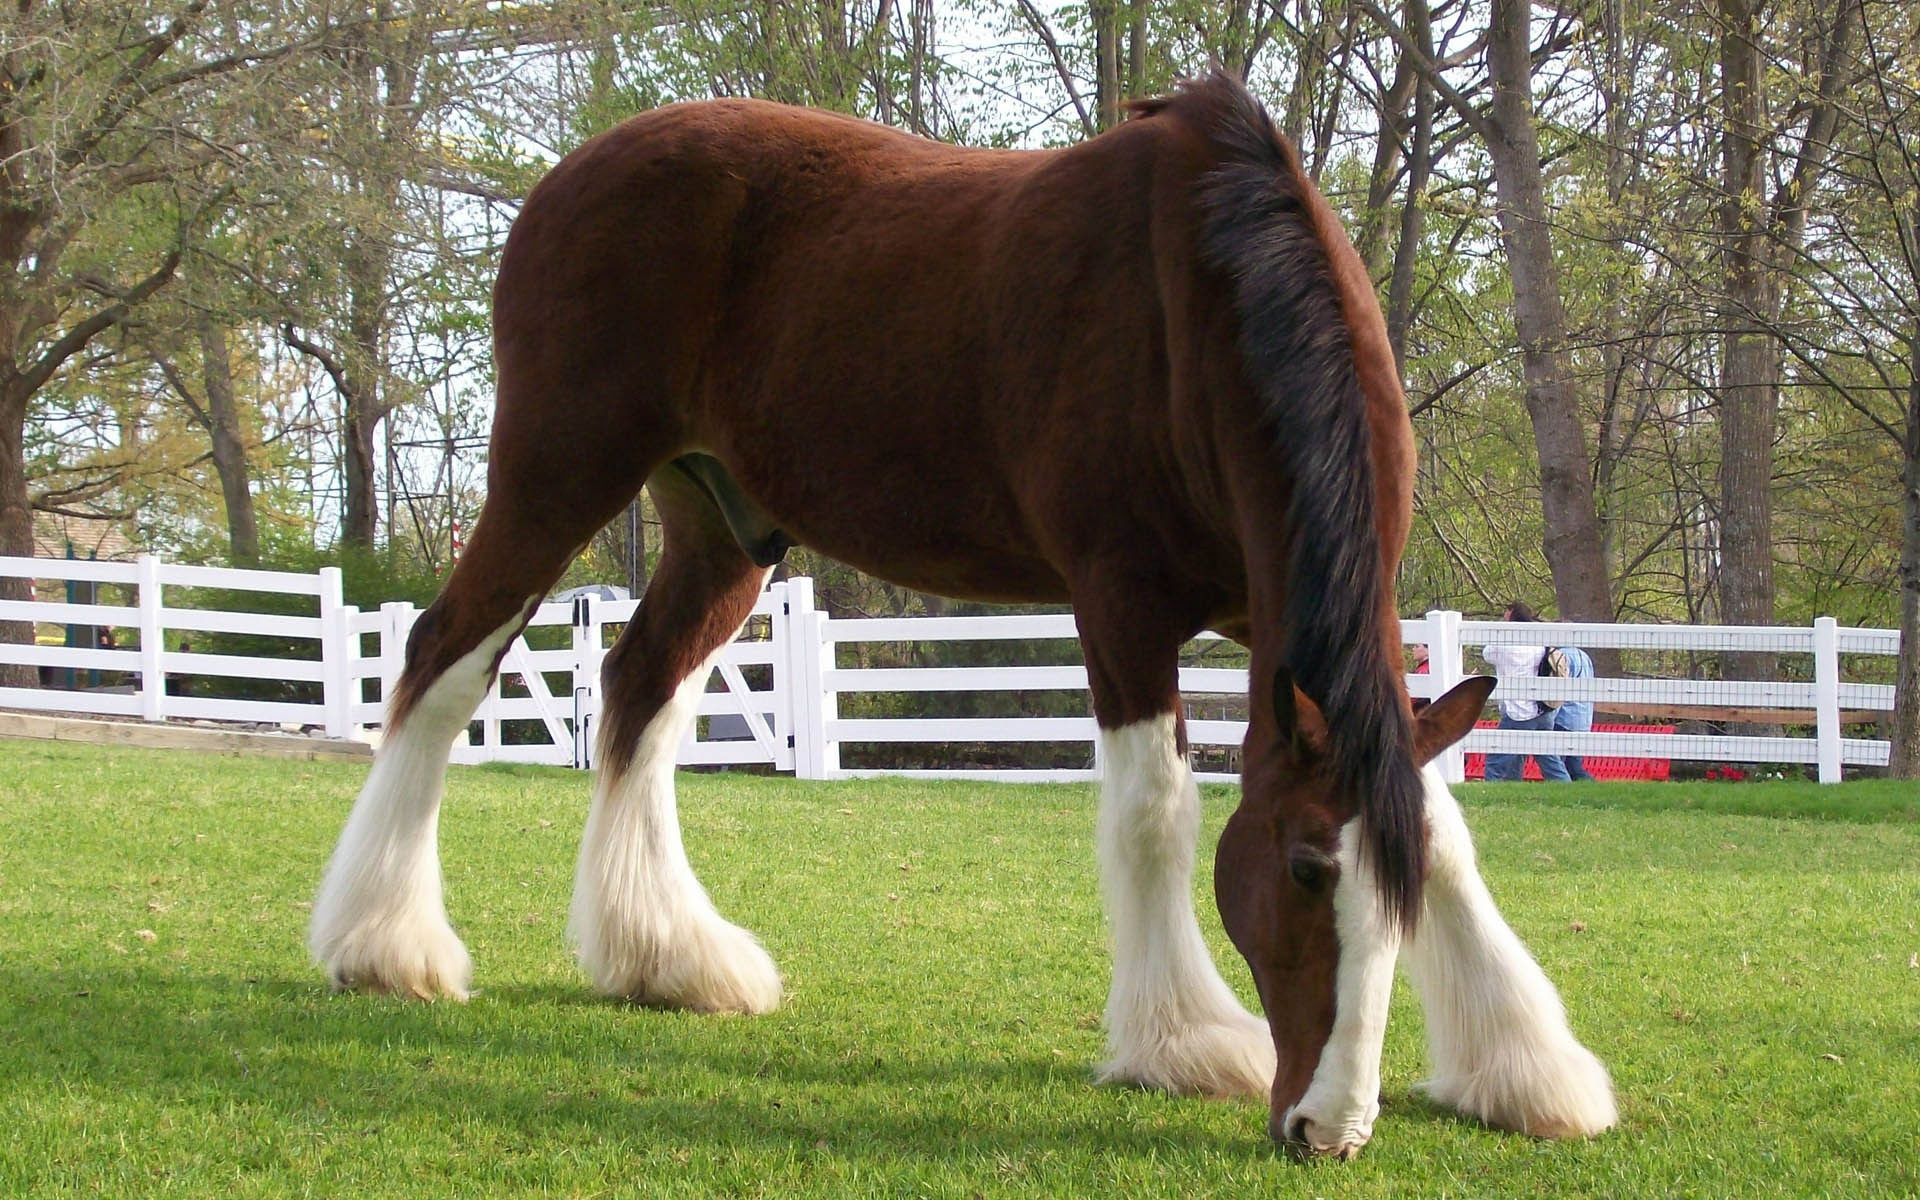 41550 download wallpaper Animals, Horses screensavers and pictures for free